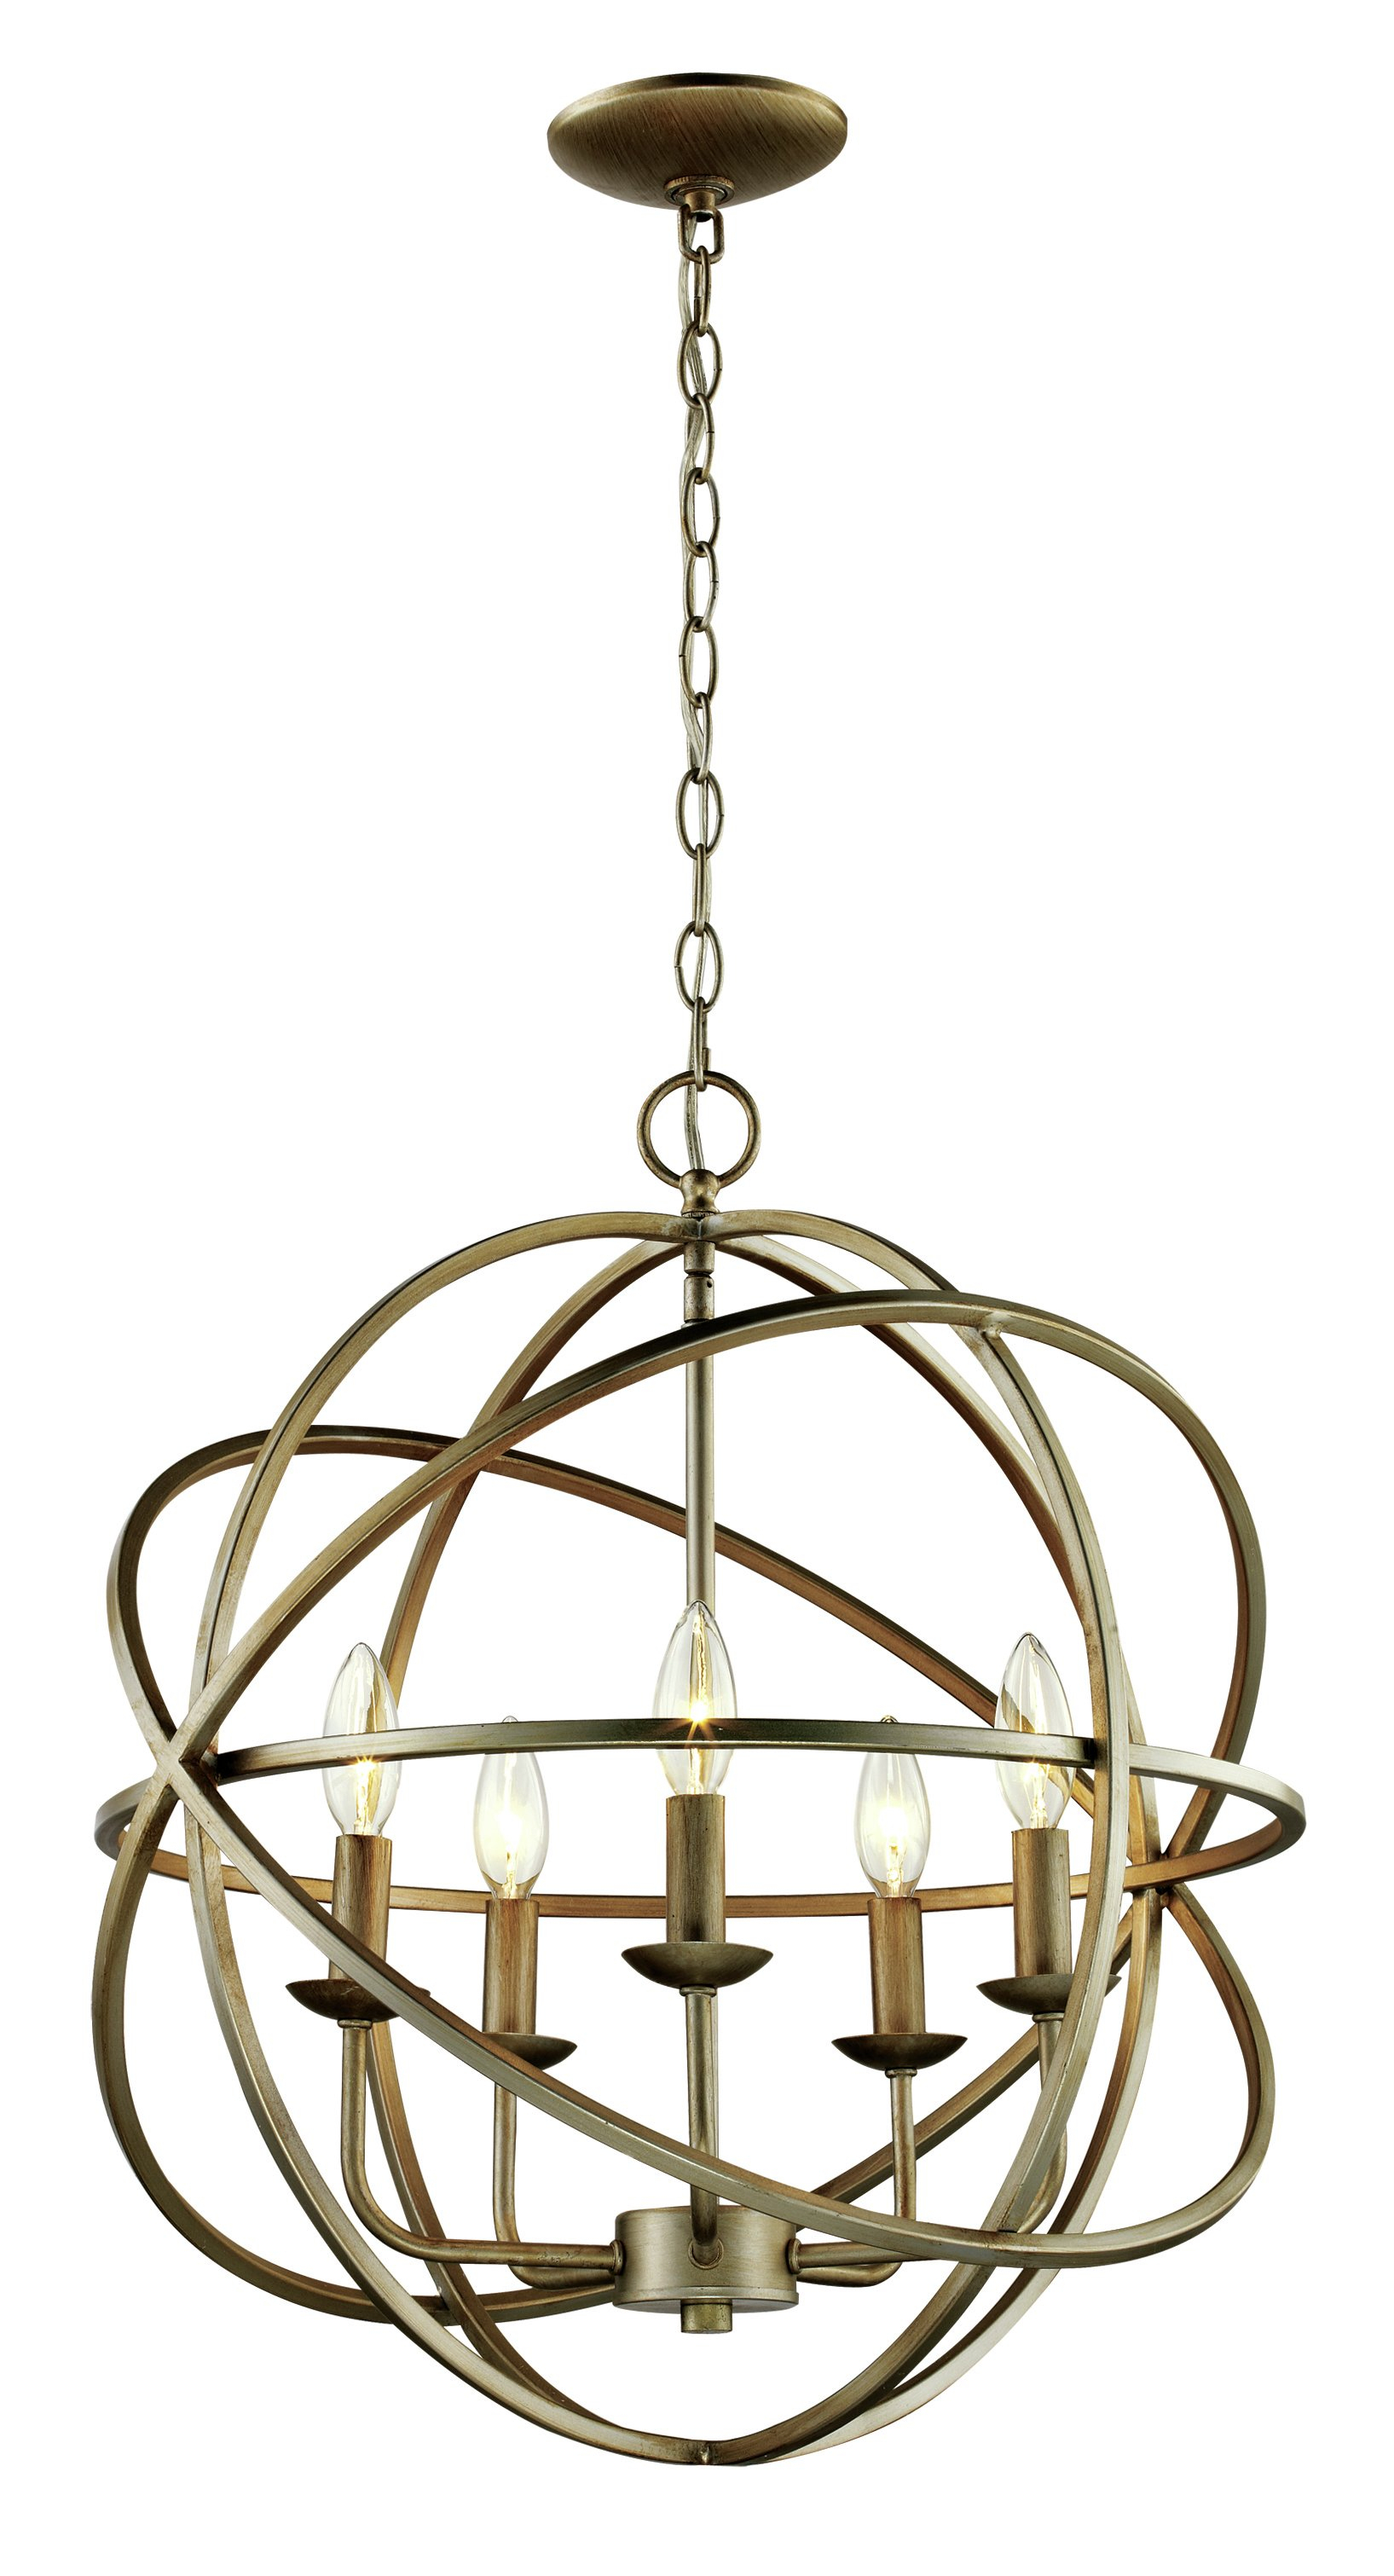 Hankinson 5 Light Globe Chandelier Regarding Verlene Foyer 5 Light Globe Chandeliers (View 13 of 30)